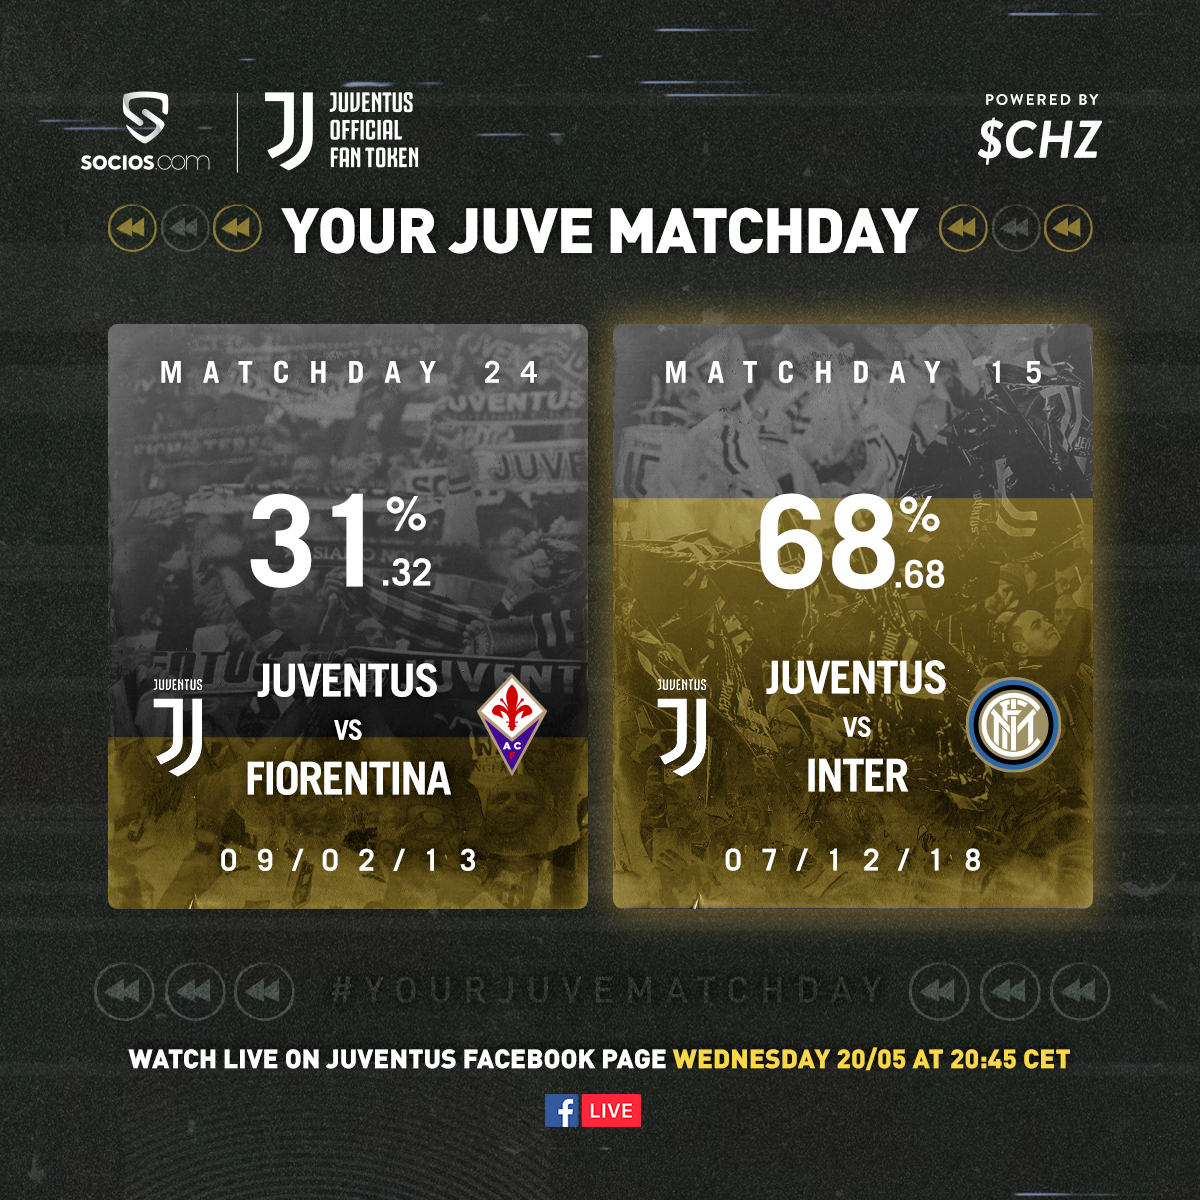 The results are in and we head 🔙 to 2018 for #JuveInter! 🇮🇹⚪️⚫️  Visit https://t.co/RuB2Ytx8qK tonight and enjoy #YourJuveMatchday 😊  Big props to everyone for voting on the @socios app 🙌 https://t.co/otRRSnXOgO